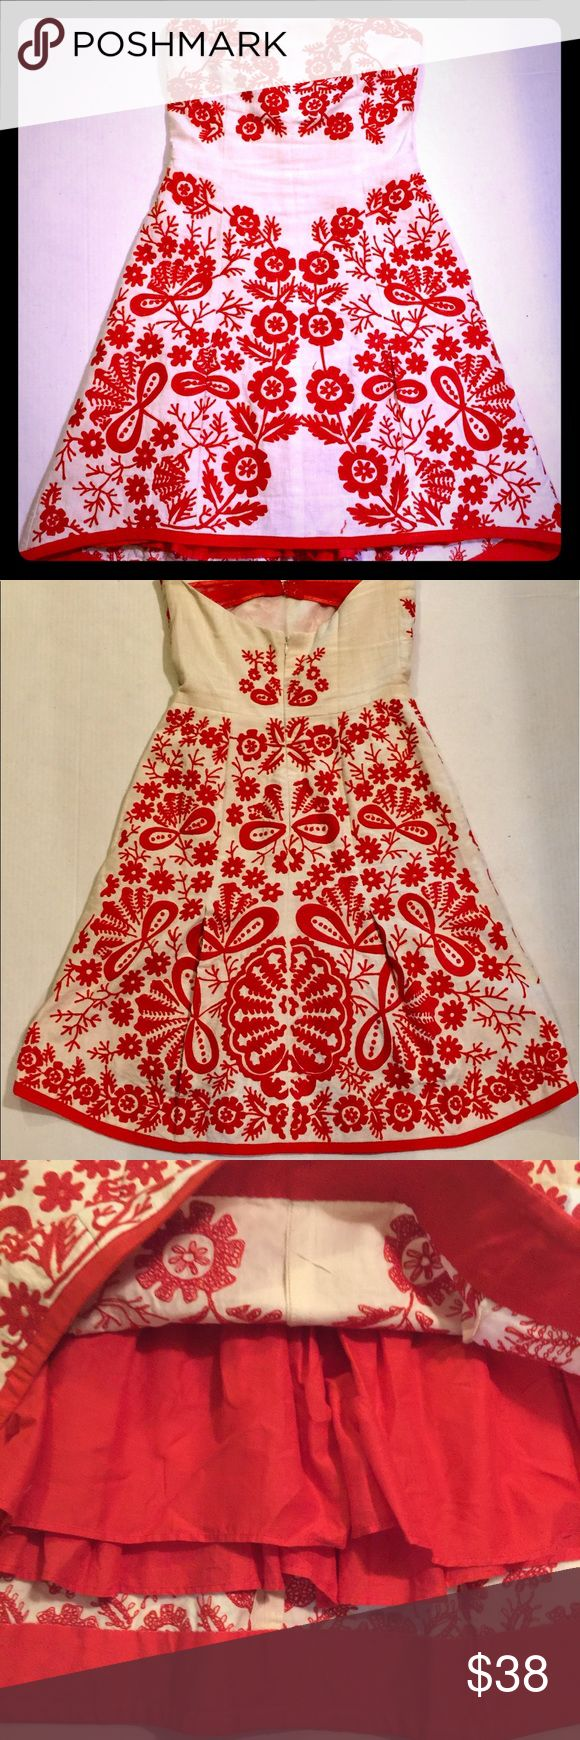 Rampage red lace harness dress